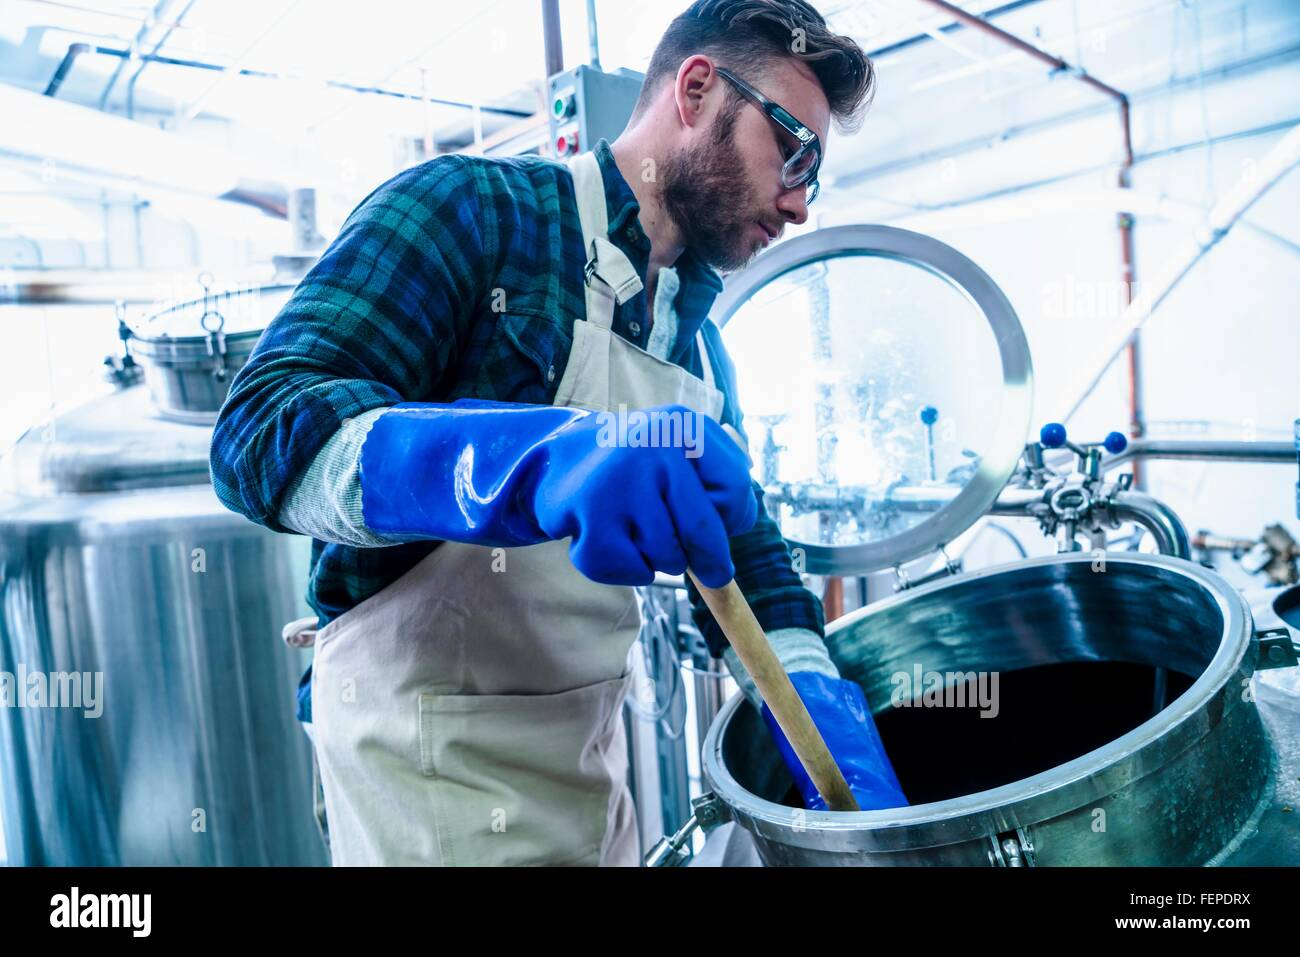 Side view of young man in brewery wearing apron and protective gloves testing beer in tank - Stock Image